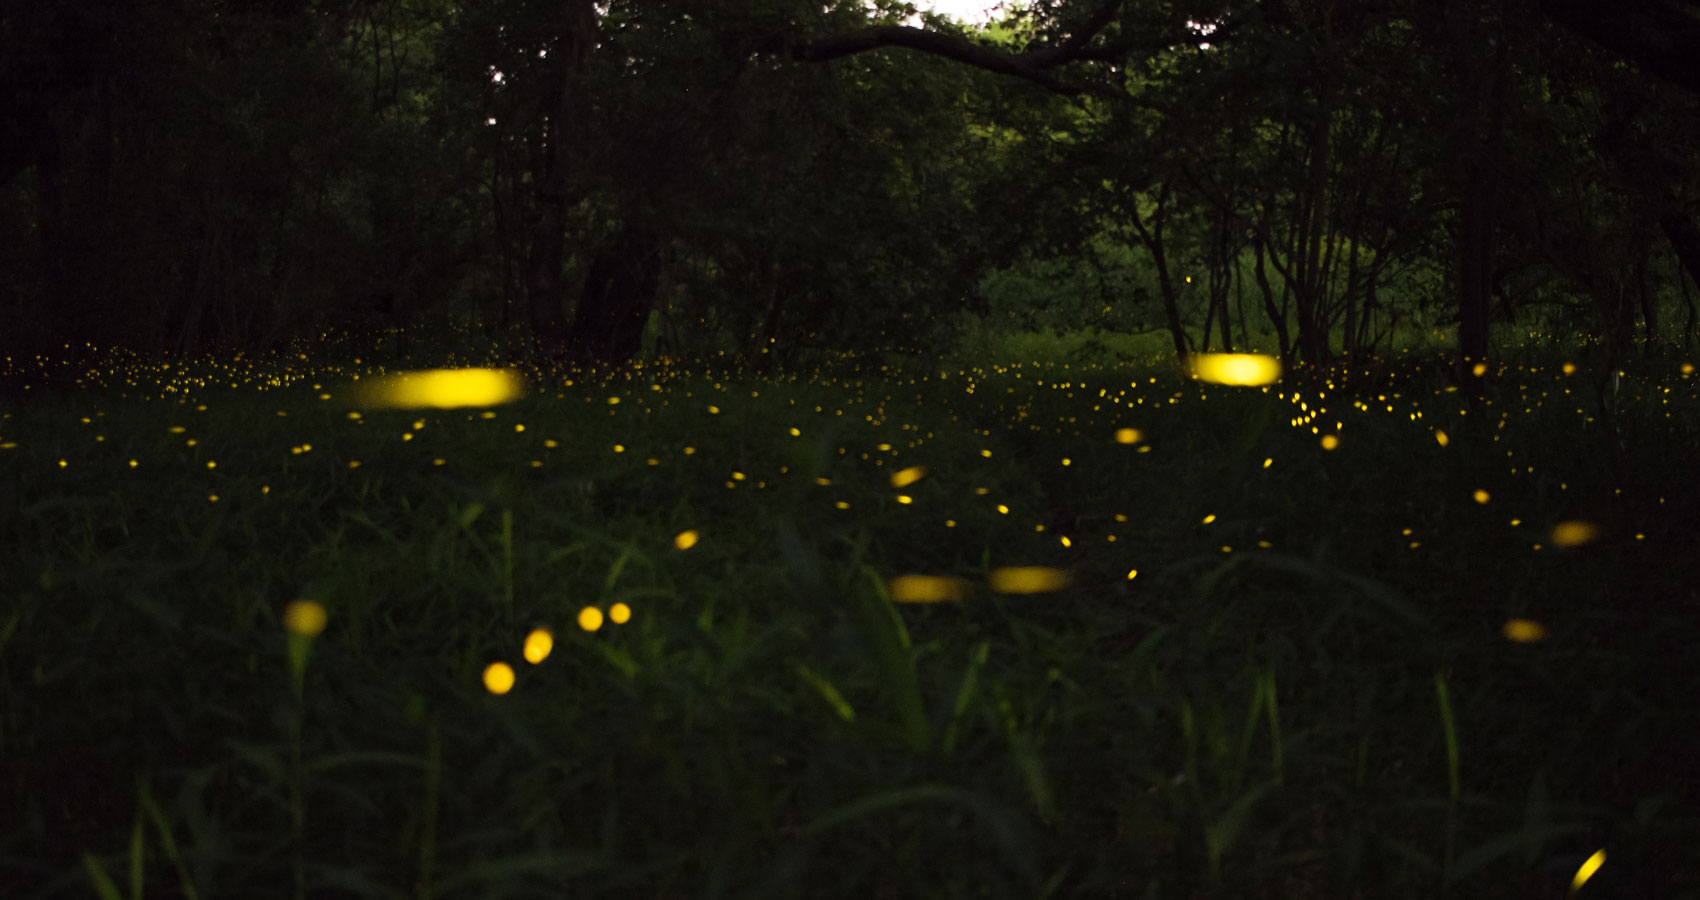 Fireflies, a haiku written by Sunita Sahoo at Spilwords.com